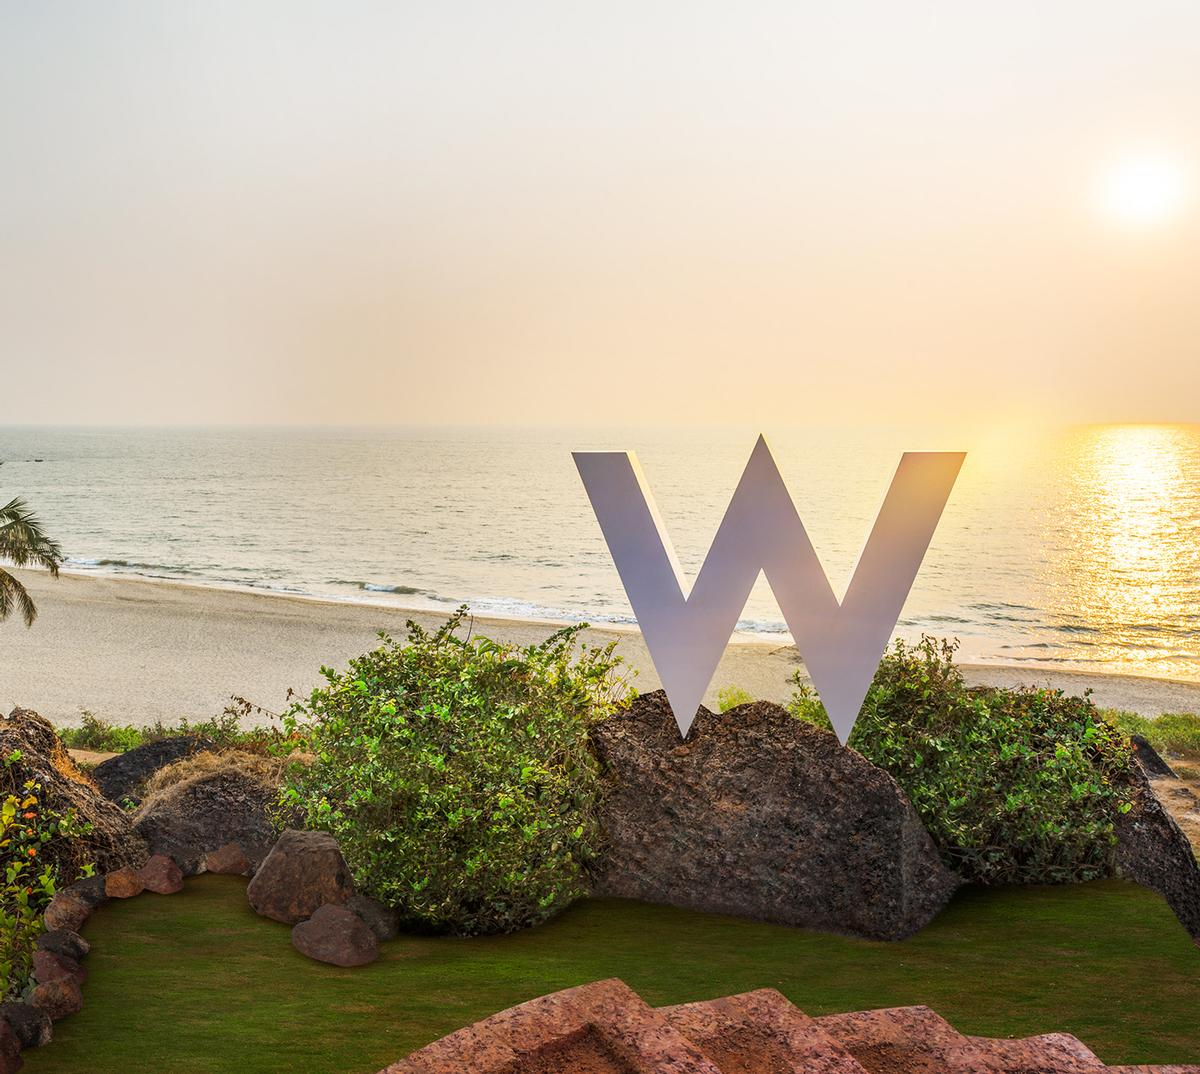 The W Goa Is Set To Open This Month In India And Brand Has 33 Hotels Pipeline